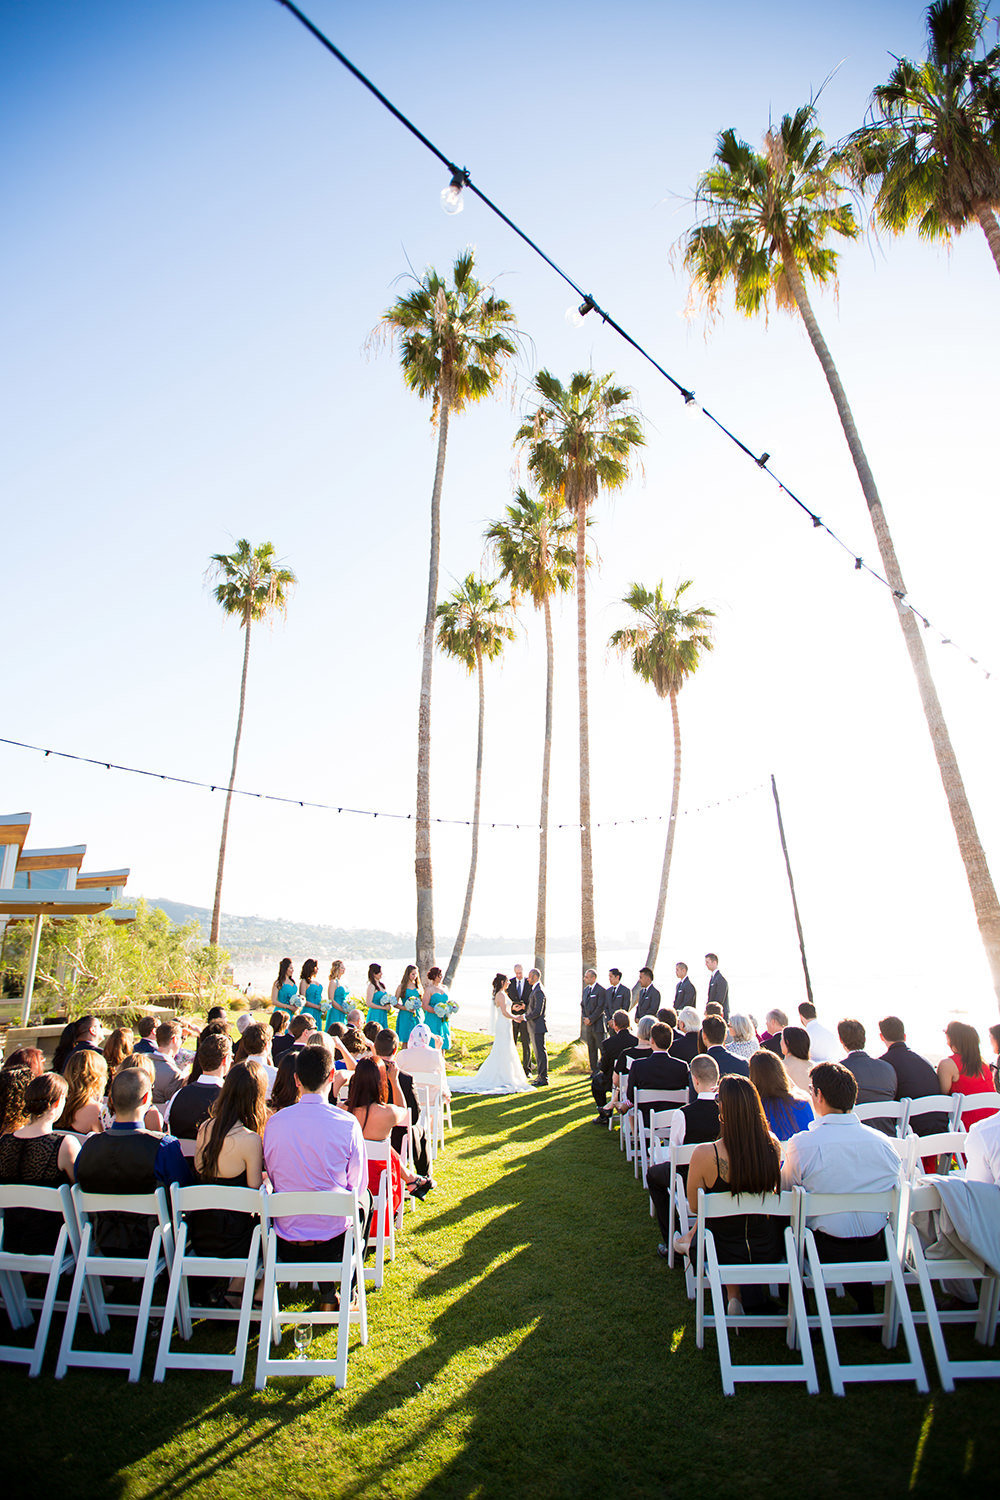 scripps seaside ceremony space with pacific ocean views